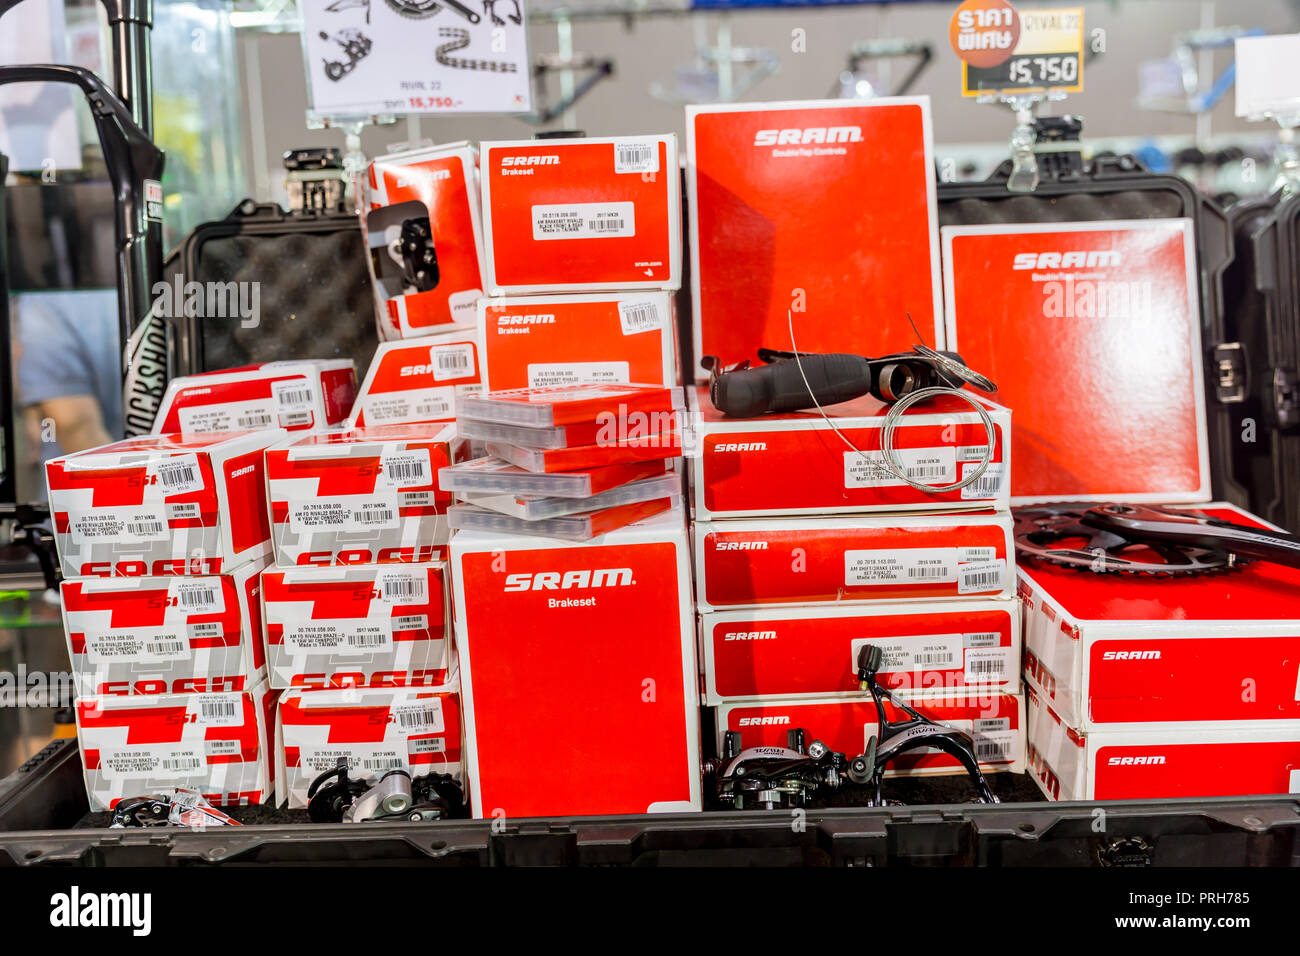 SRAM American bicycle component based in Chicago with bike gear set Sram RED groupset promotion sale in International Bangkok Bike 2018 expo. Bangkok, - Stock Image